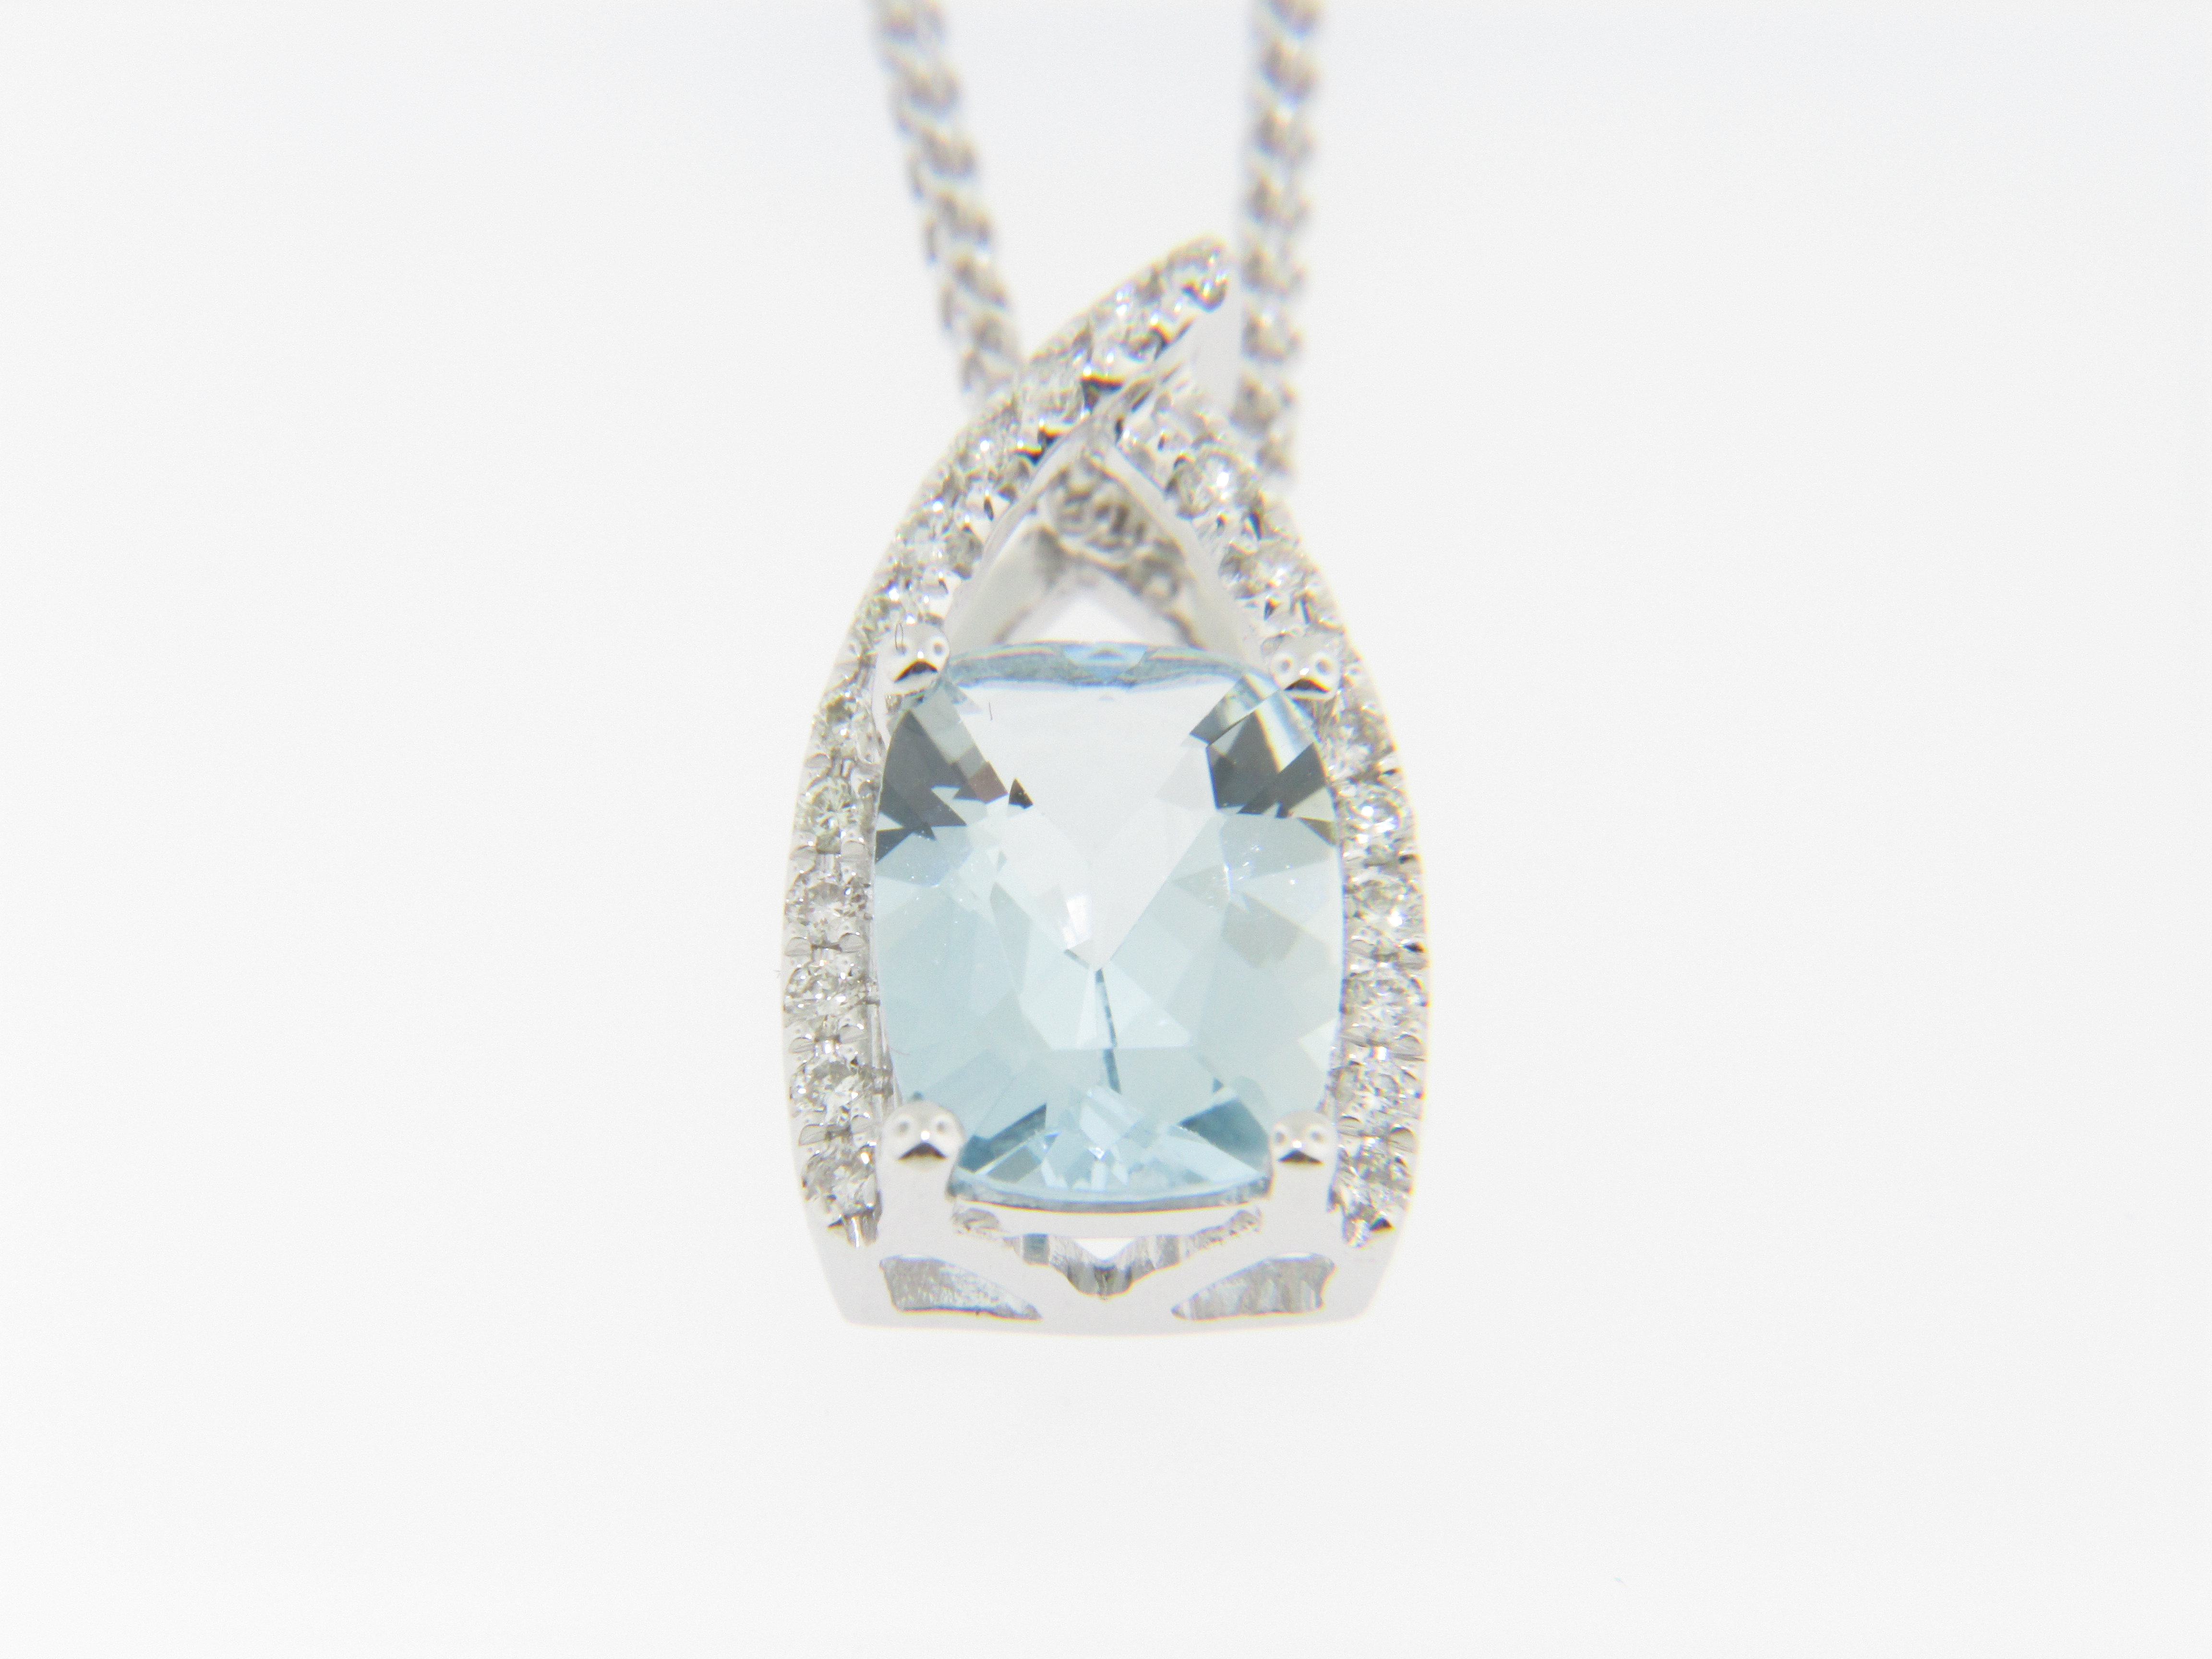 Contemporary Cushion Cut Aquamarine & Diamond Pendant With Most Up To Date Sapphire, Aquamarine And Diamond Necklaces (View 9 of 25)